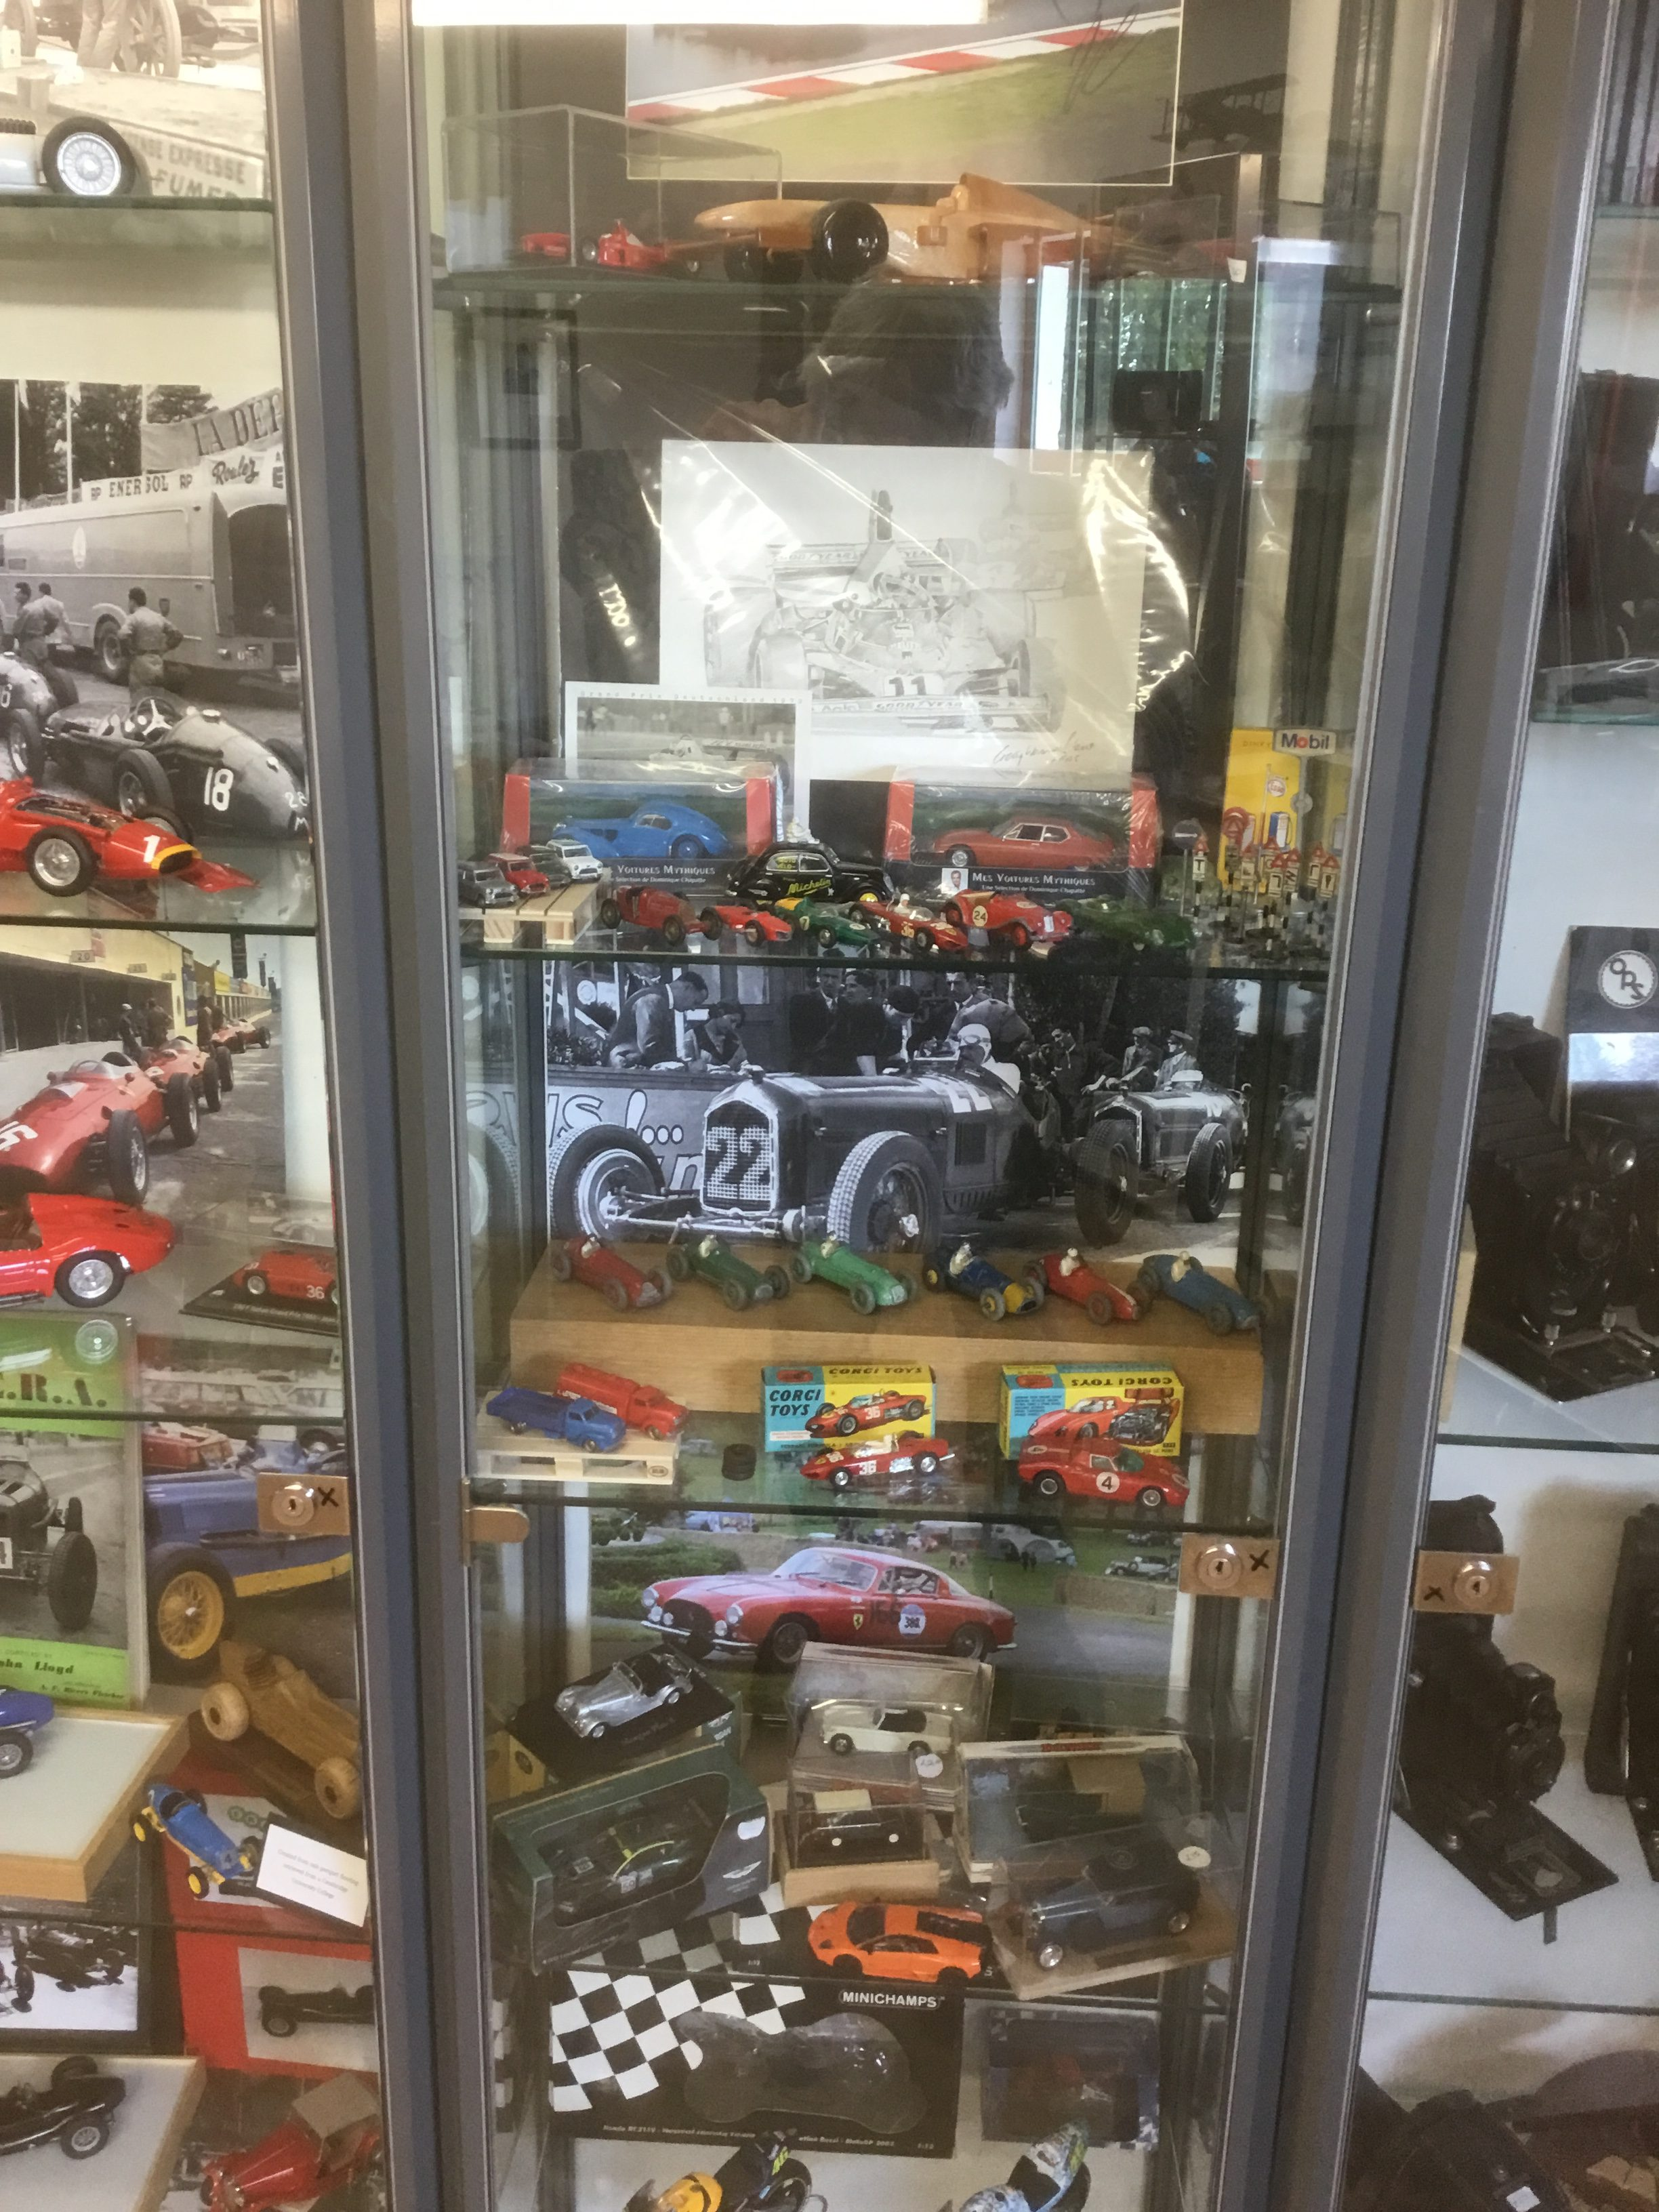 More classic model cars